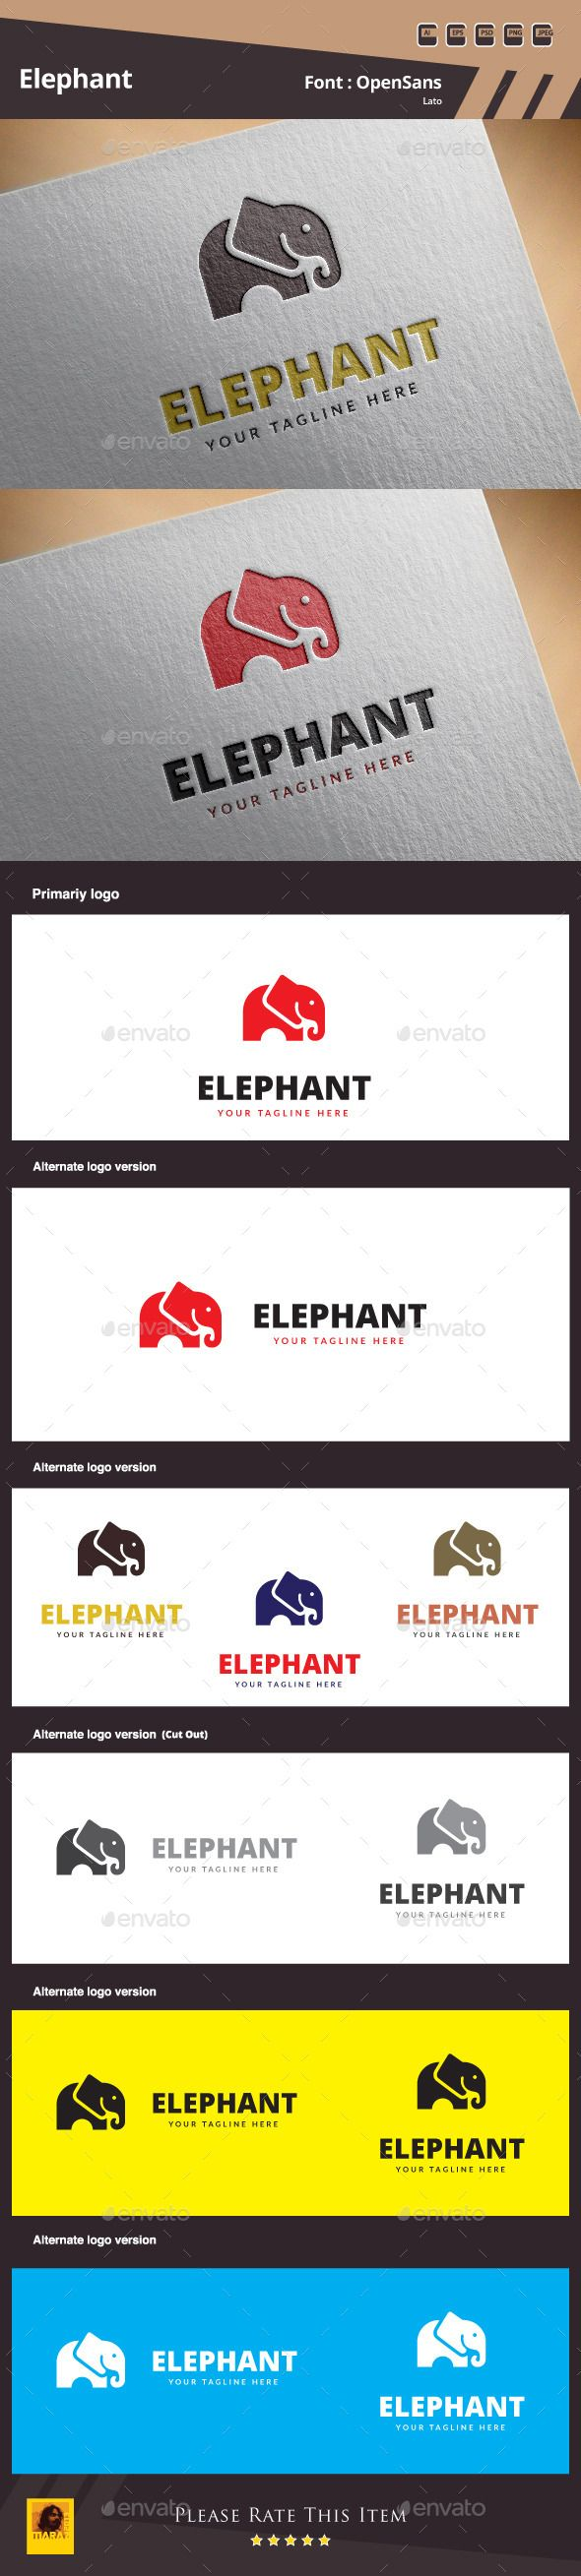 Elephant Logo Template (Transparent PNG, JPG Image, Vector EPS, AI Illustrator, TIFF Image, Resizable, CS, africa, animal, animals, art, big, blue, brand, corporate, creative, cute, design, elephant, elephants, head, huge, little, logo, media, modern, professional, simple, software, studio. graphic, turquoise, wild, wildlife)